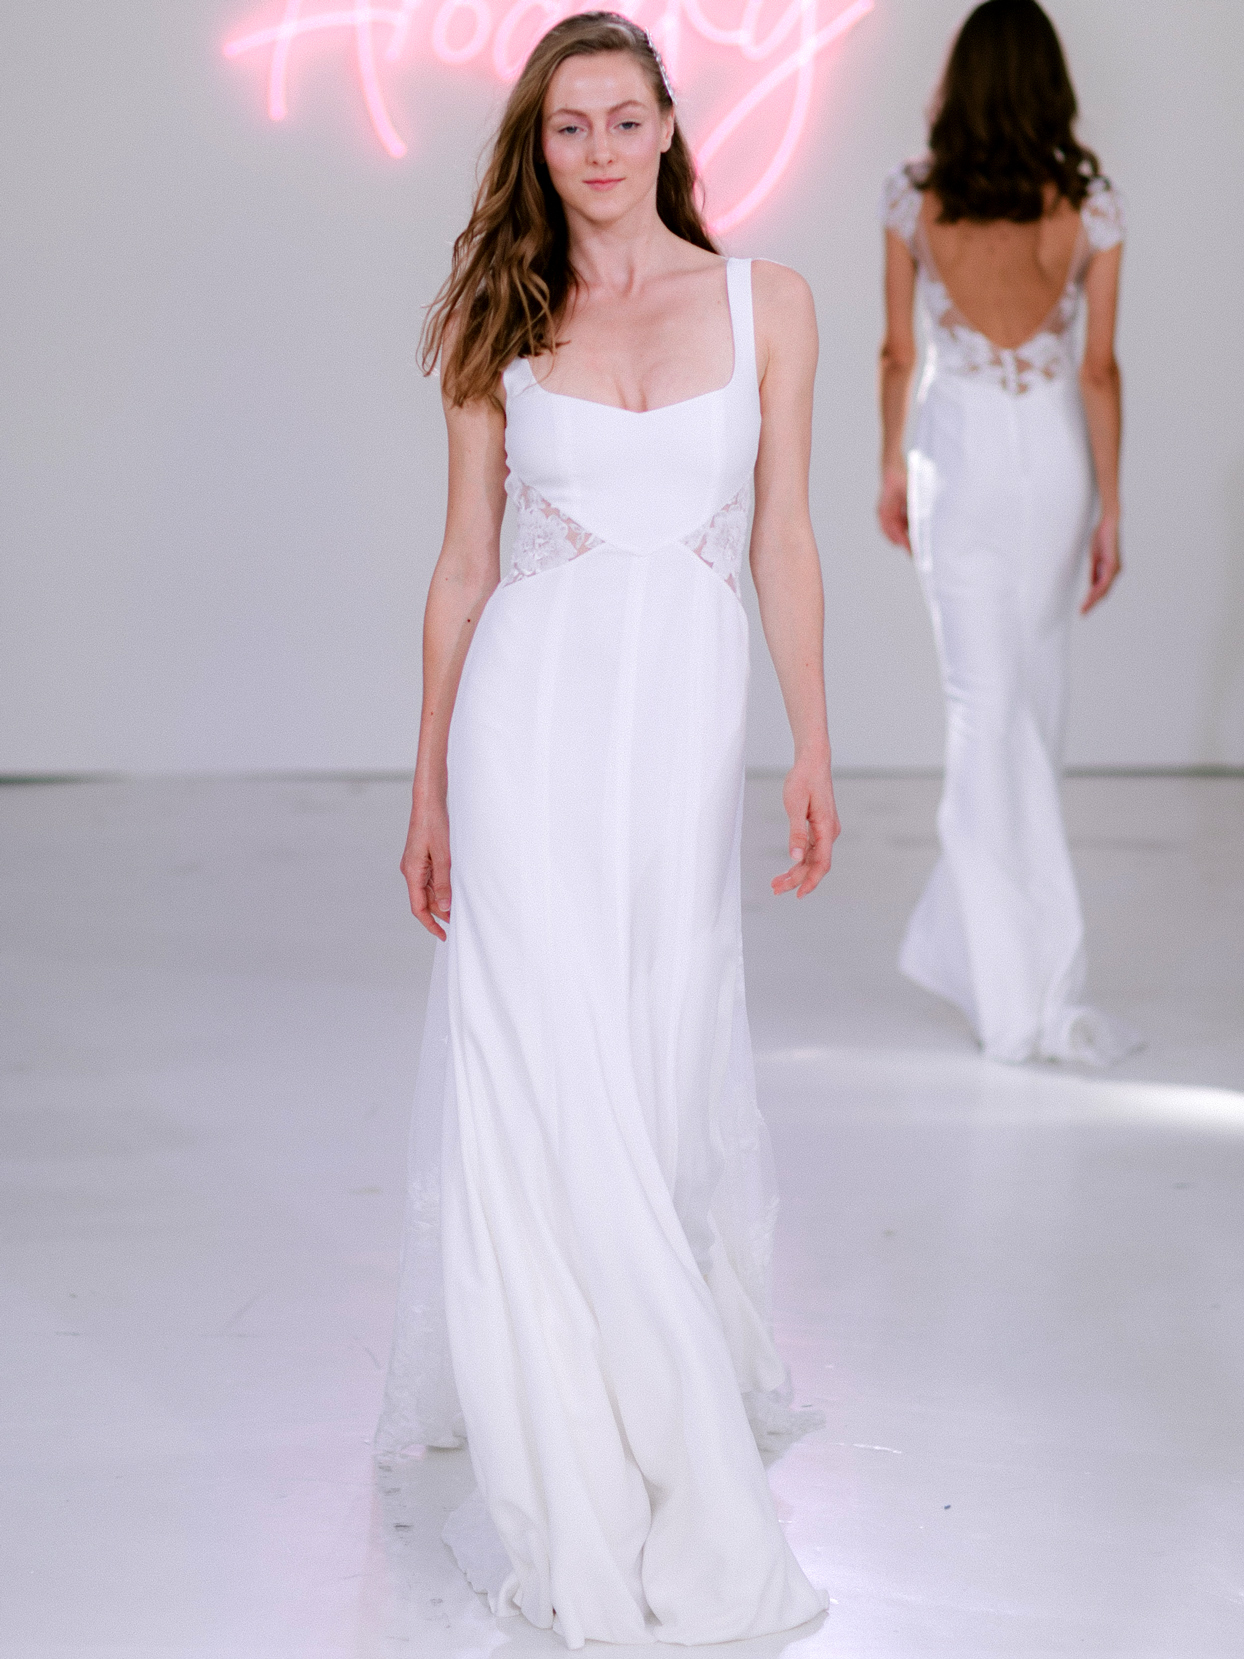 Rime Arodaky X The Mews Bridal thin strap square neckline wedding dress fall 2020